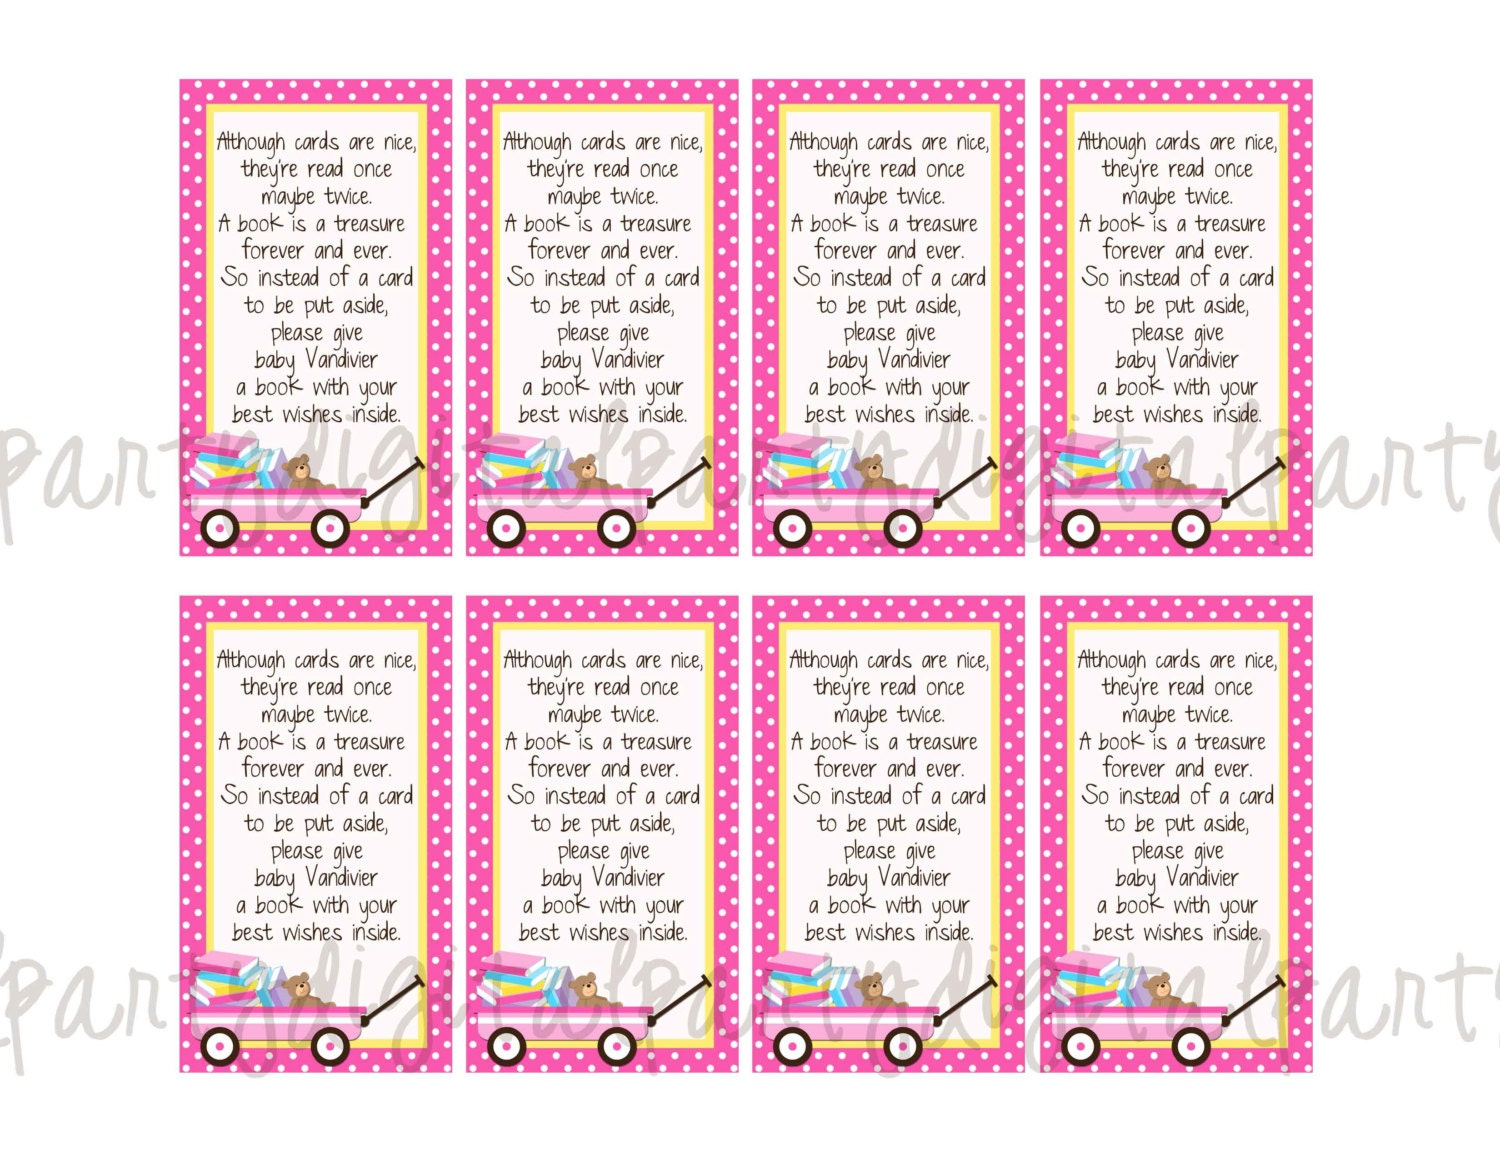 Bridal Shower Thank You Card Wording For Mother In Law : ... Card Poem Pink Or Blue.Bridal Shower Thank You Card To Mother In